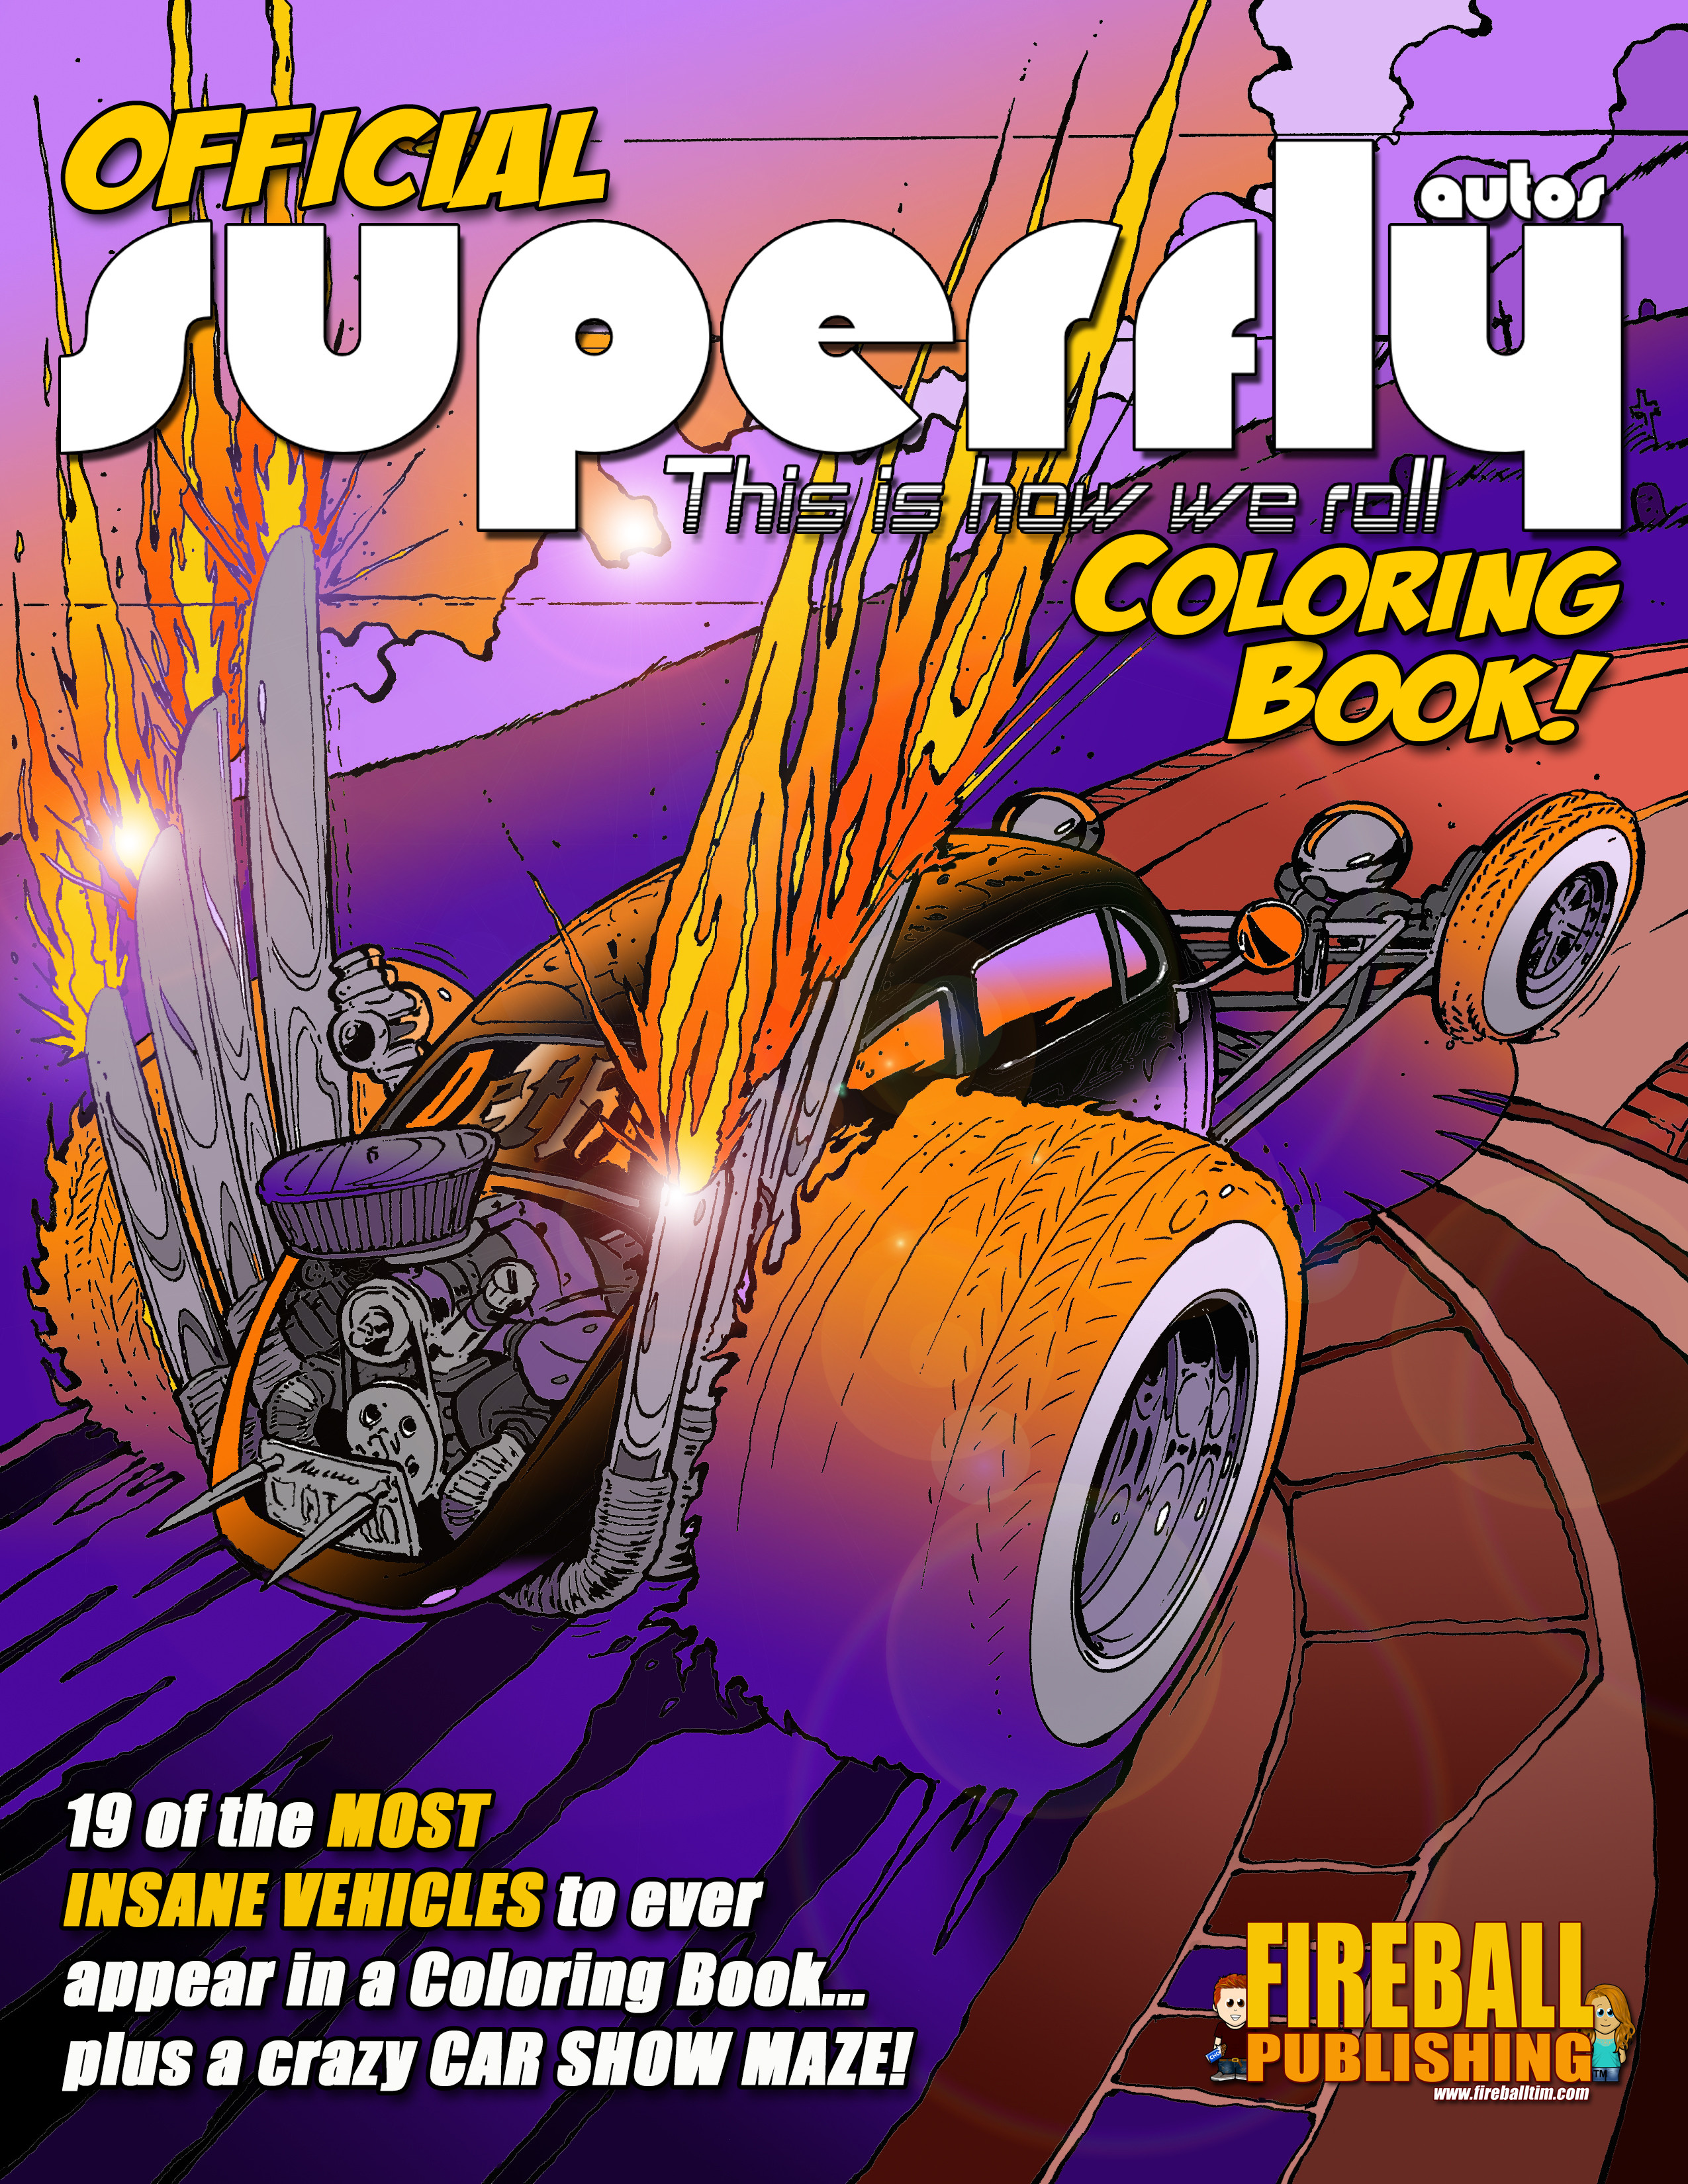 The Official SUPERFLY AUTOS Coloring Book is now available on AMAZON.